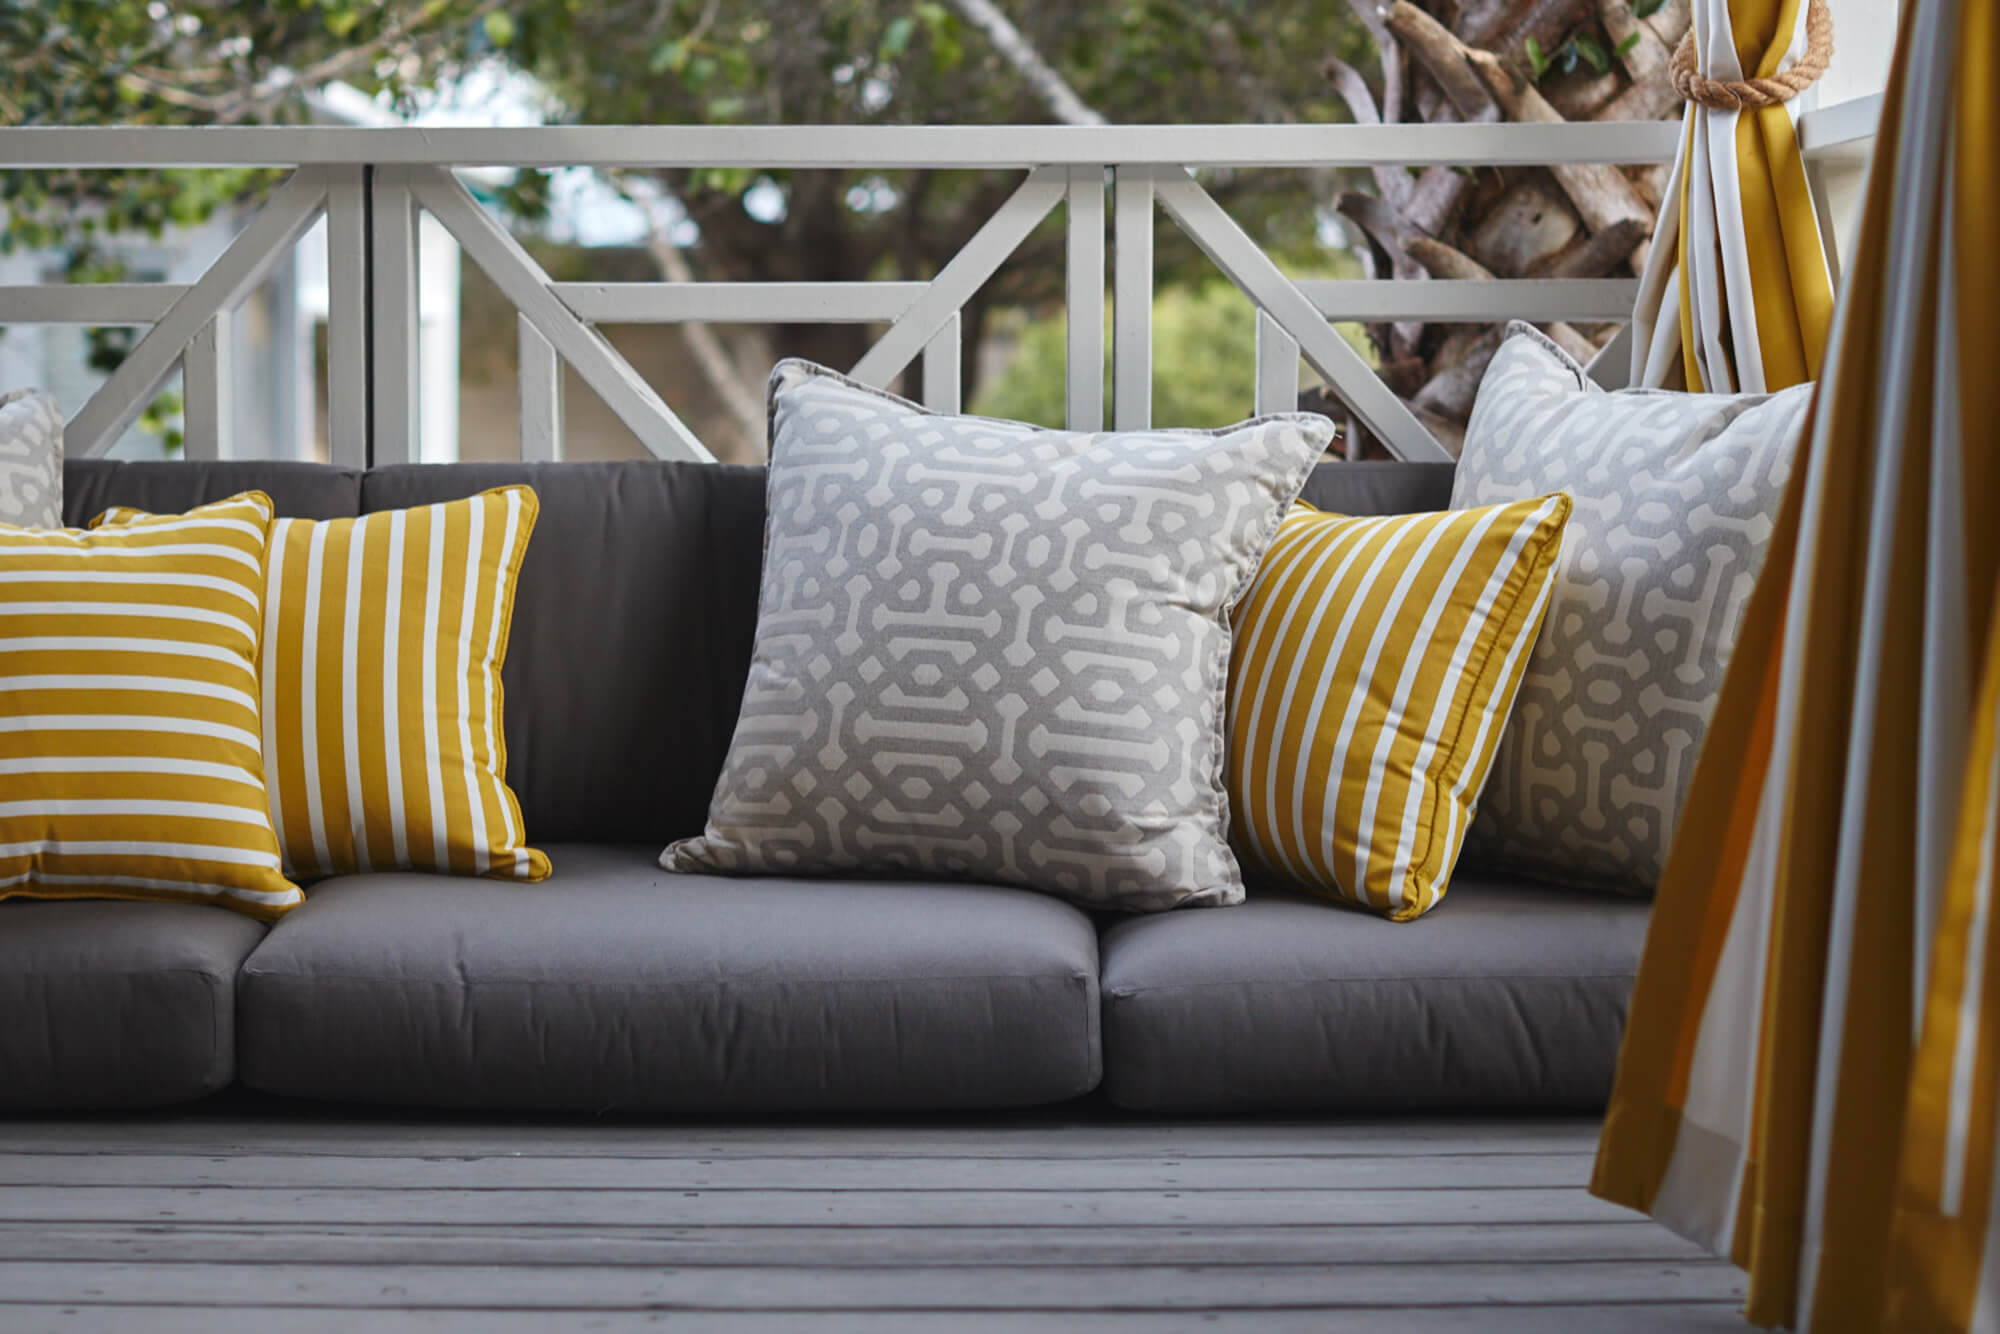 grey outdoor cushions with yellow and grey decorative pillows and yellow drapery